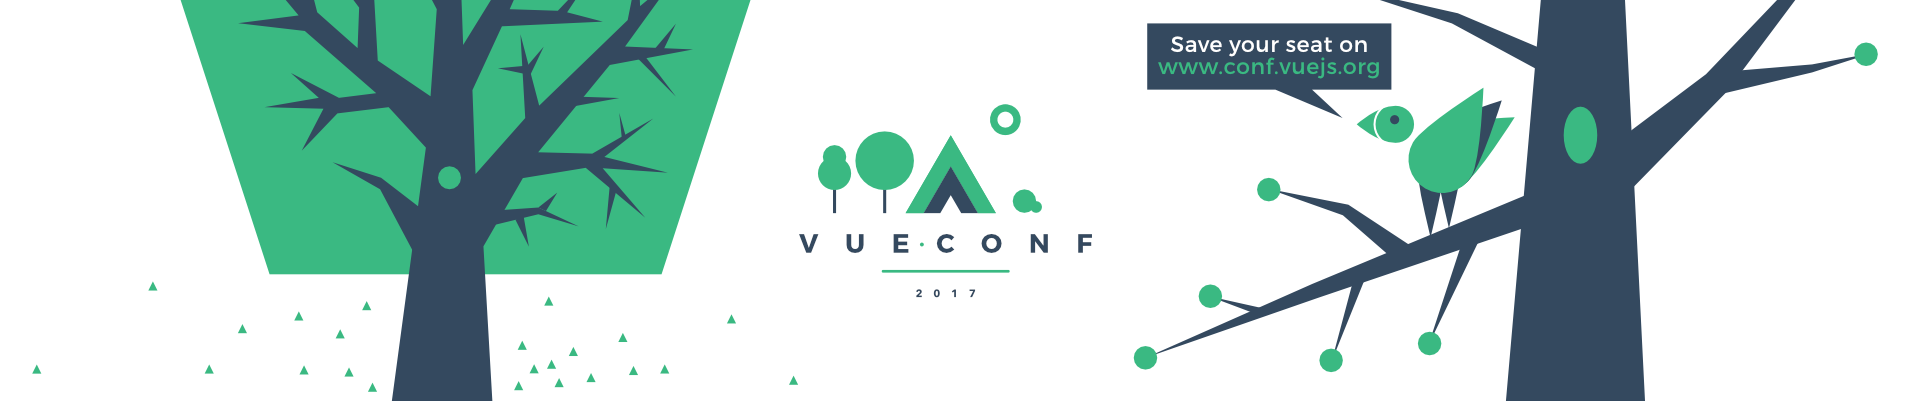 VueConf Early Bird Tickets Sale Starts in Two Days